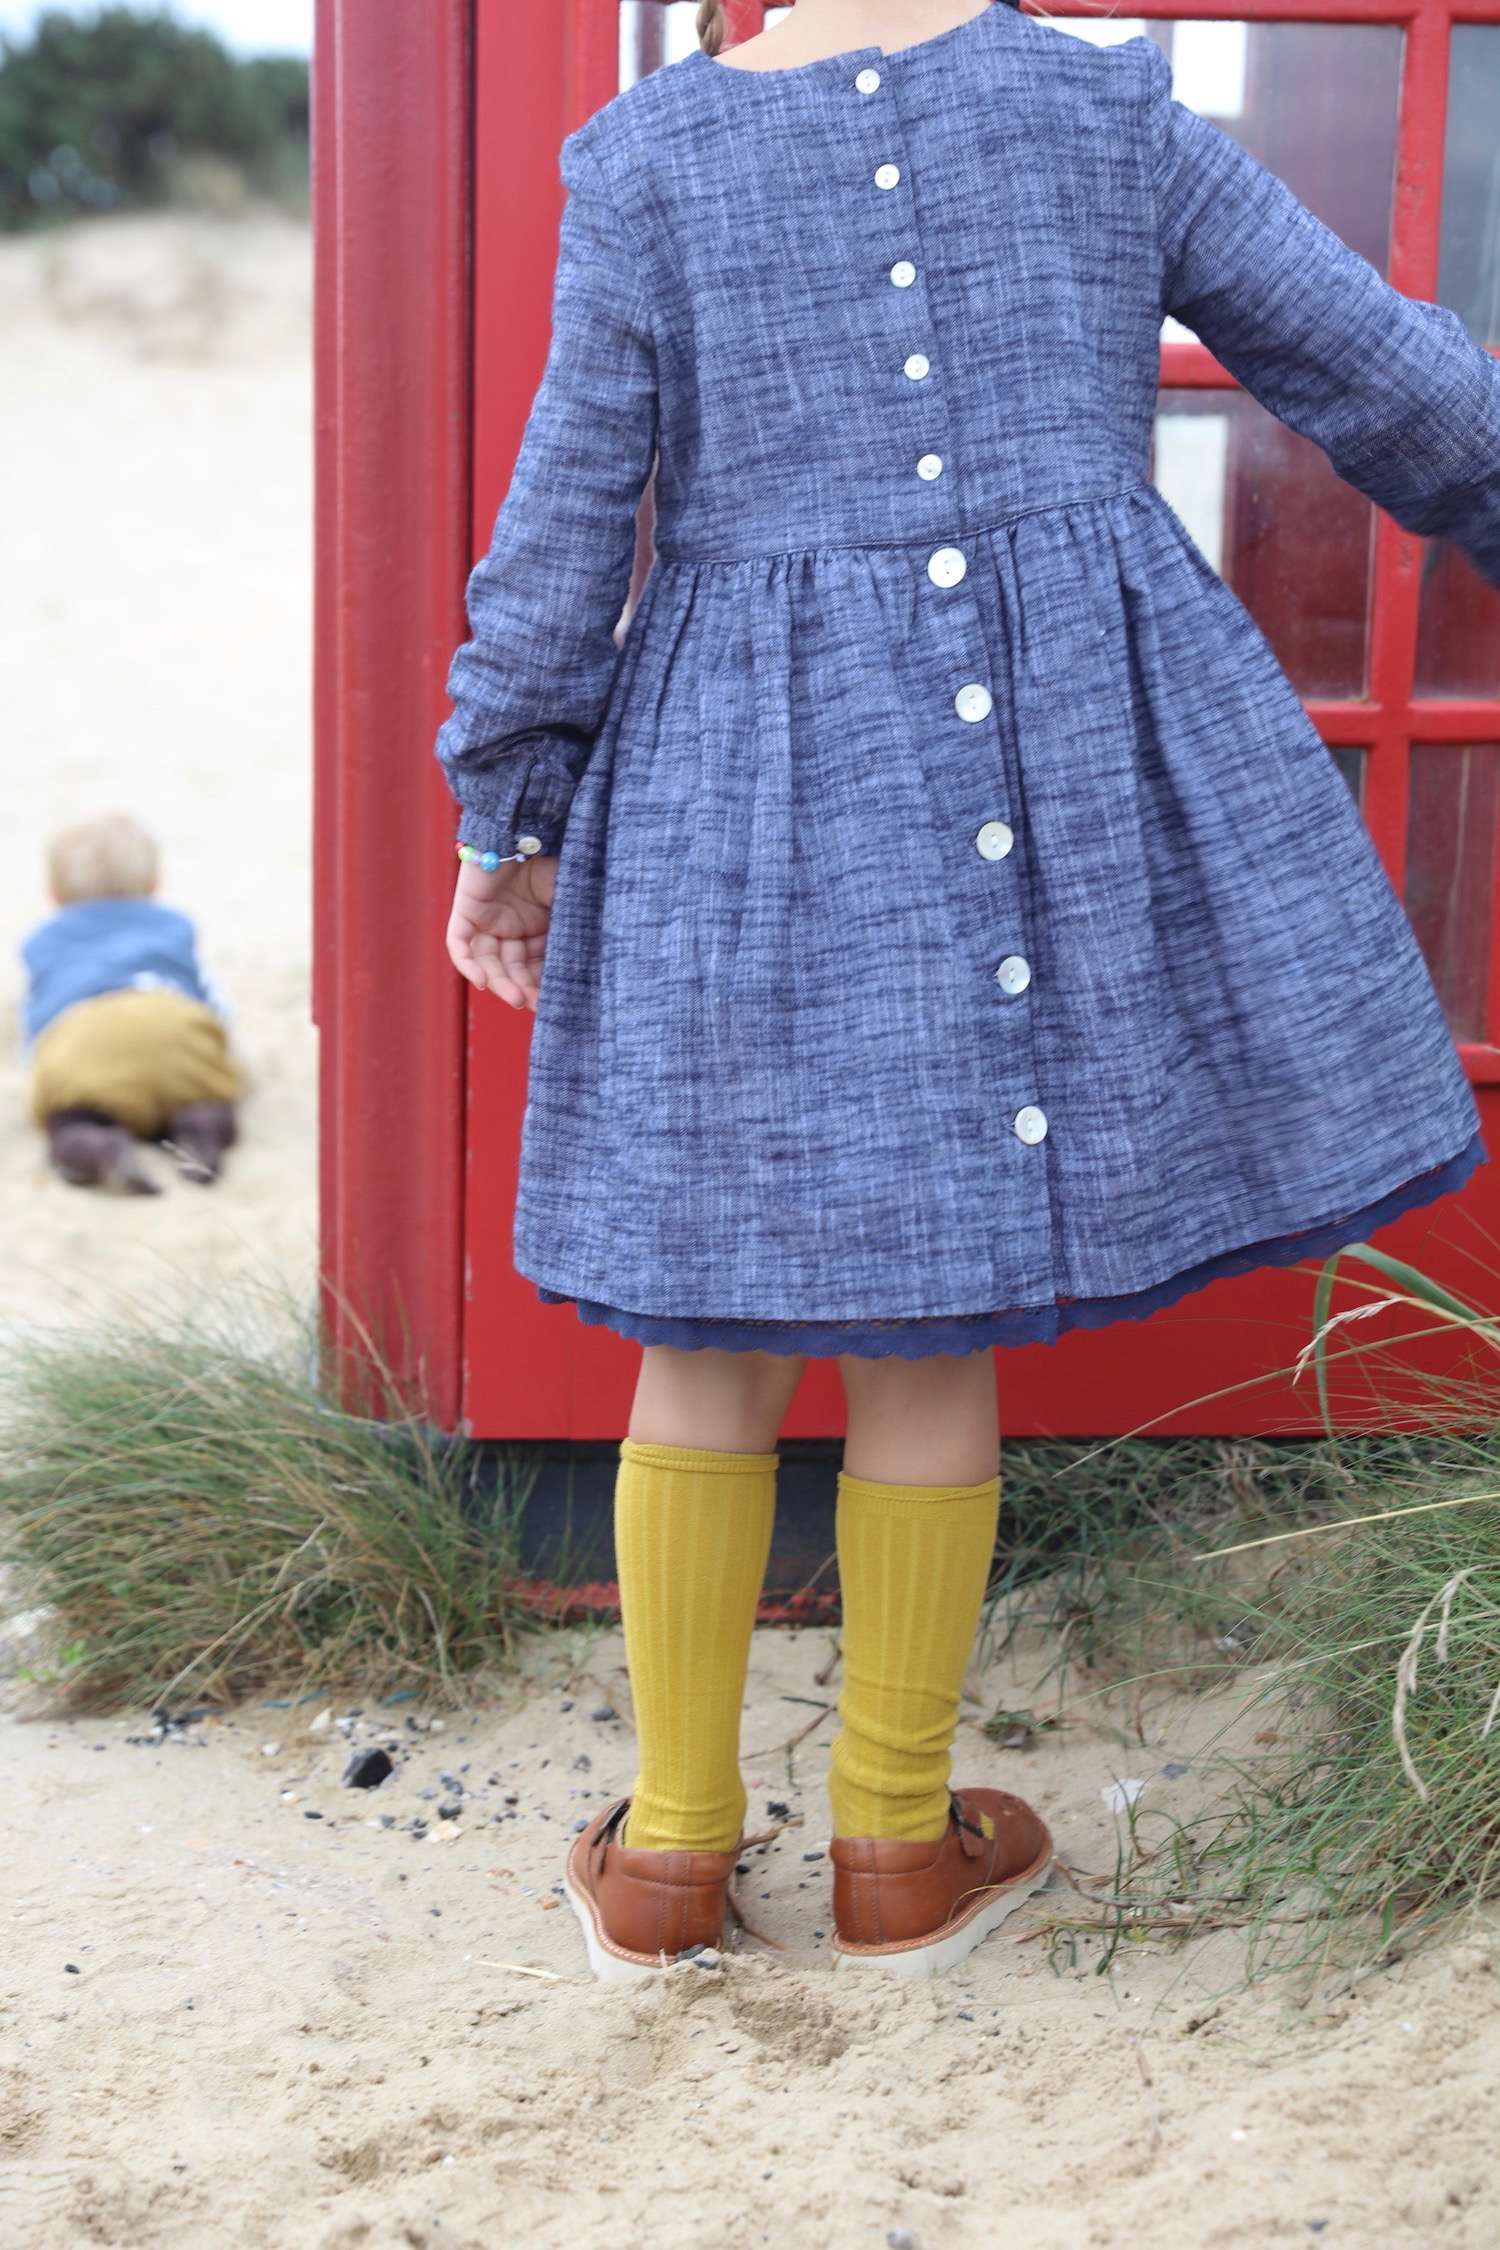 indigo_dress_Little_cotton_clothes